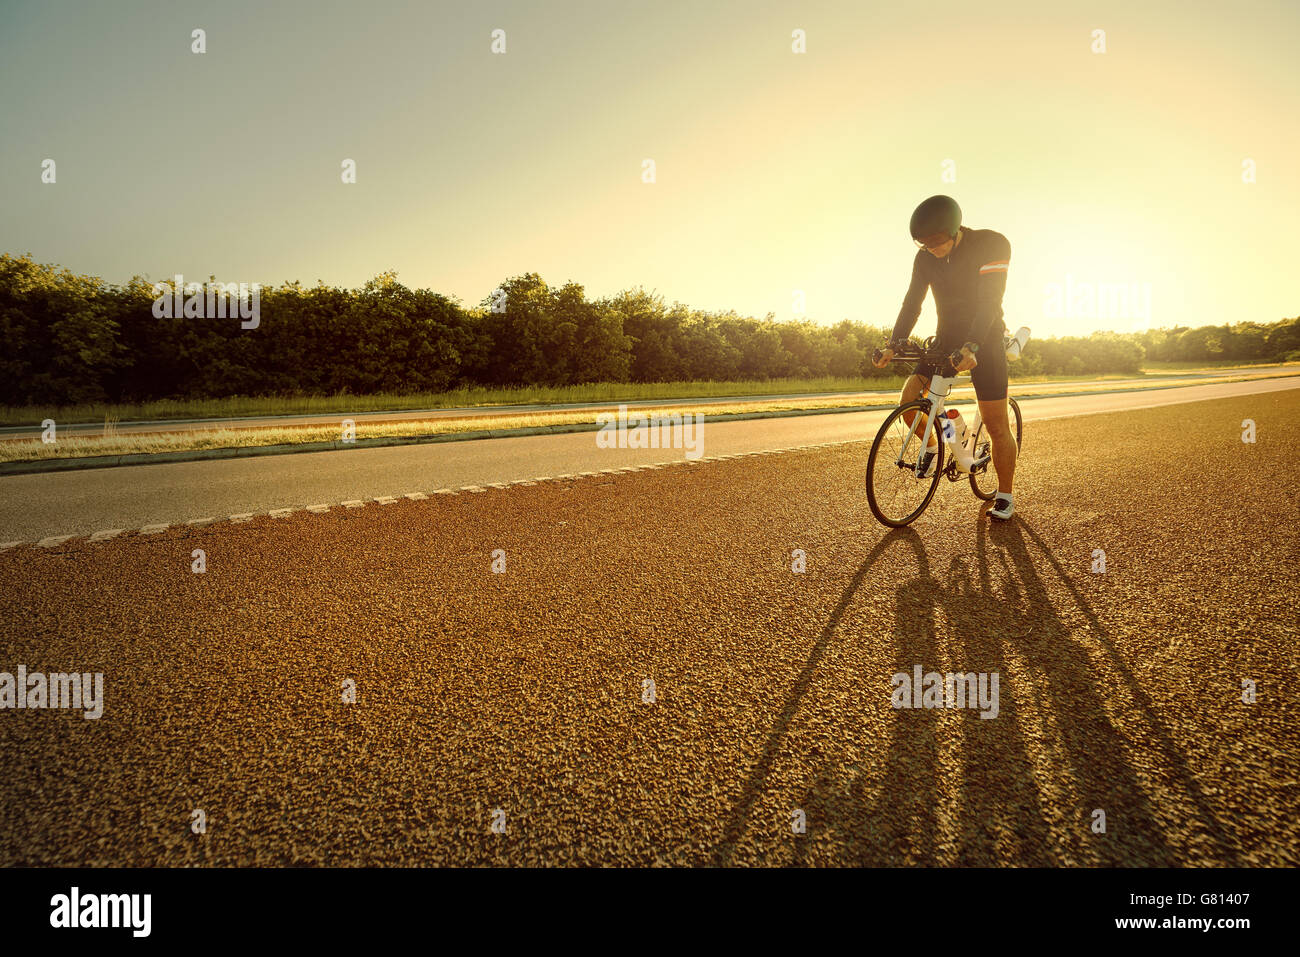 Single bicyclist wearing shorts, safety helmet and long sleeve jacket pausing at highway with long shadows extending - Stock Image